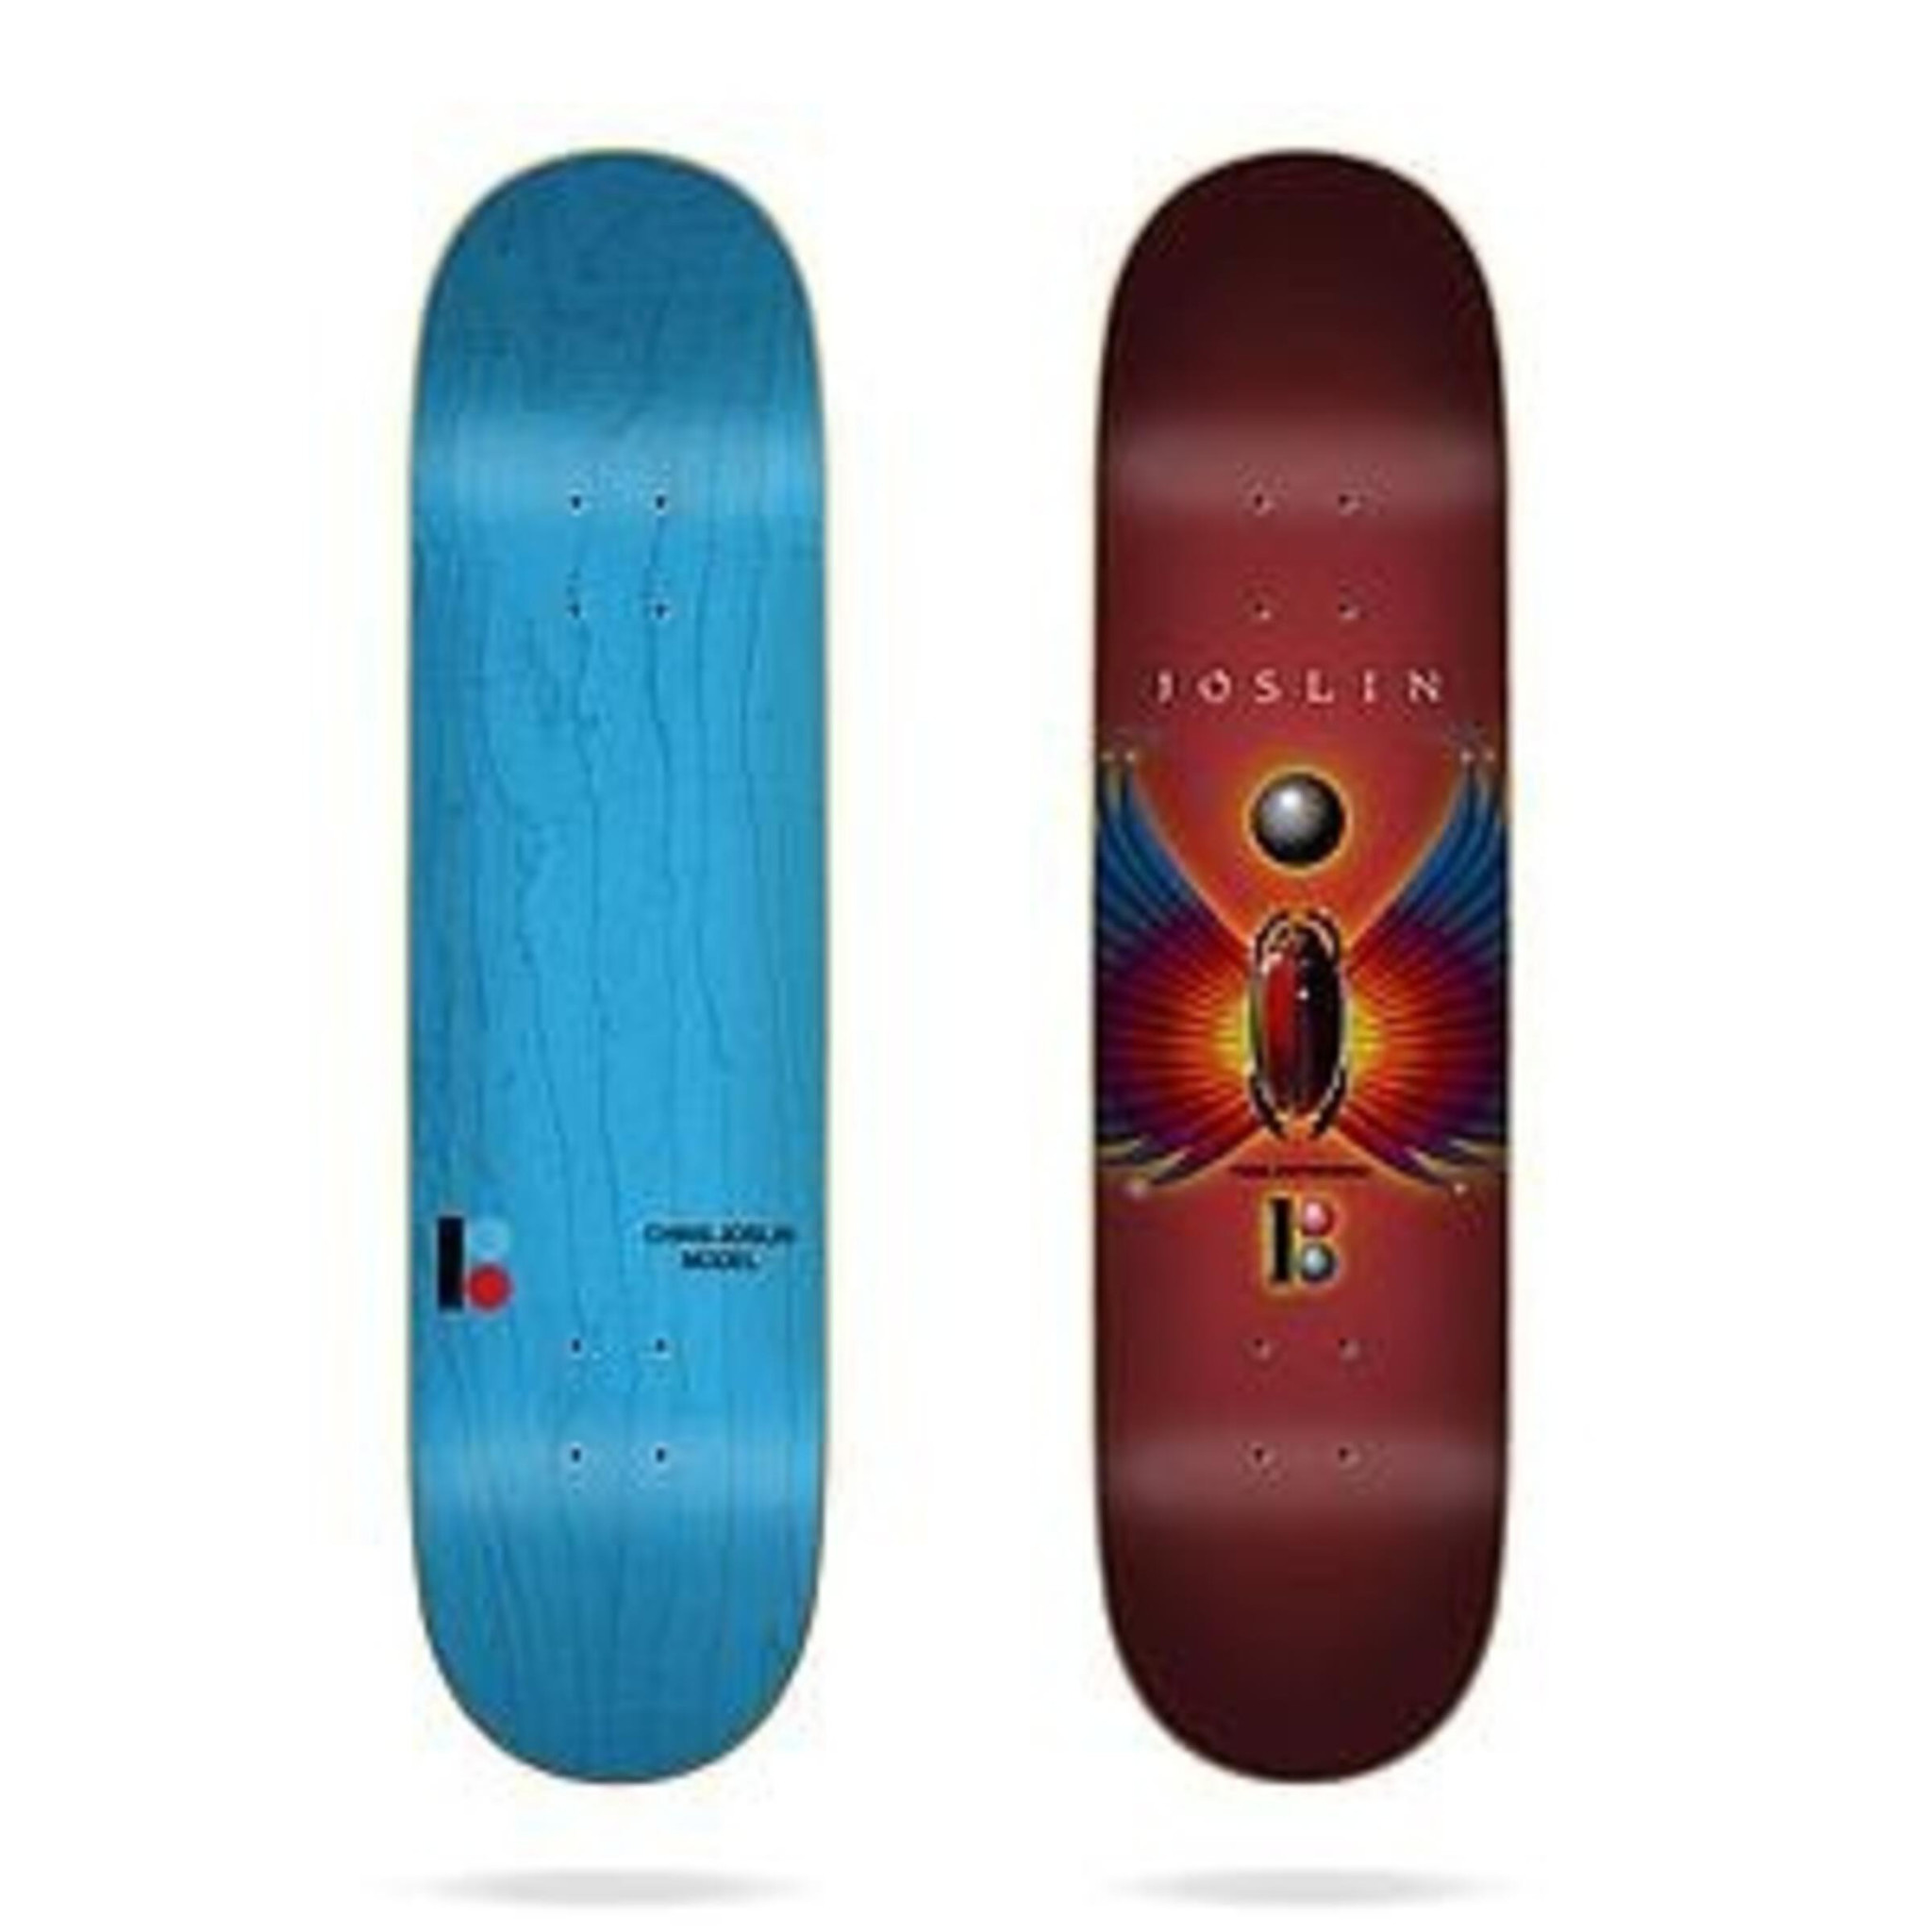 Plan B Skateboards Joslin Evolution 8.25""